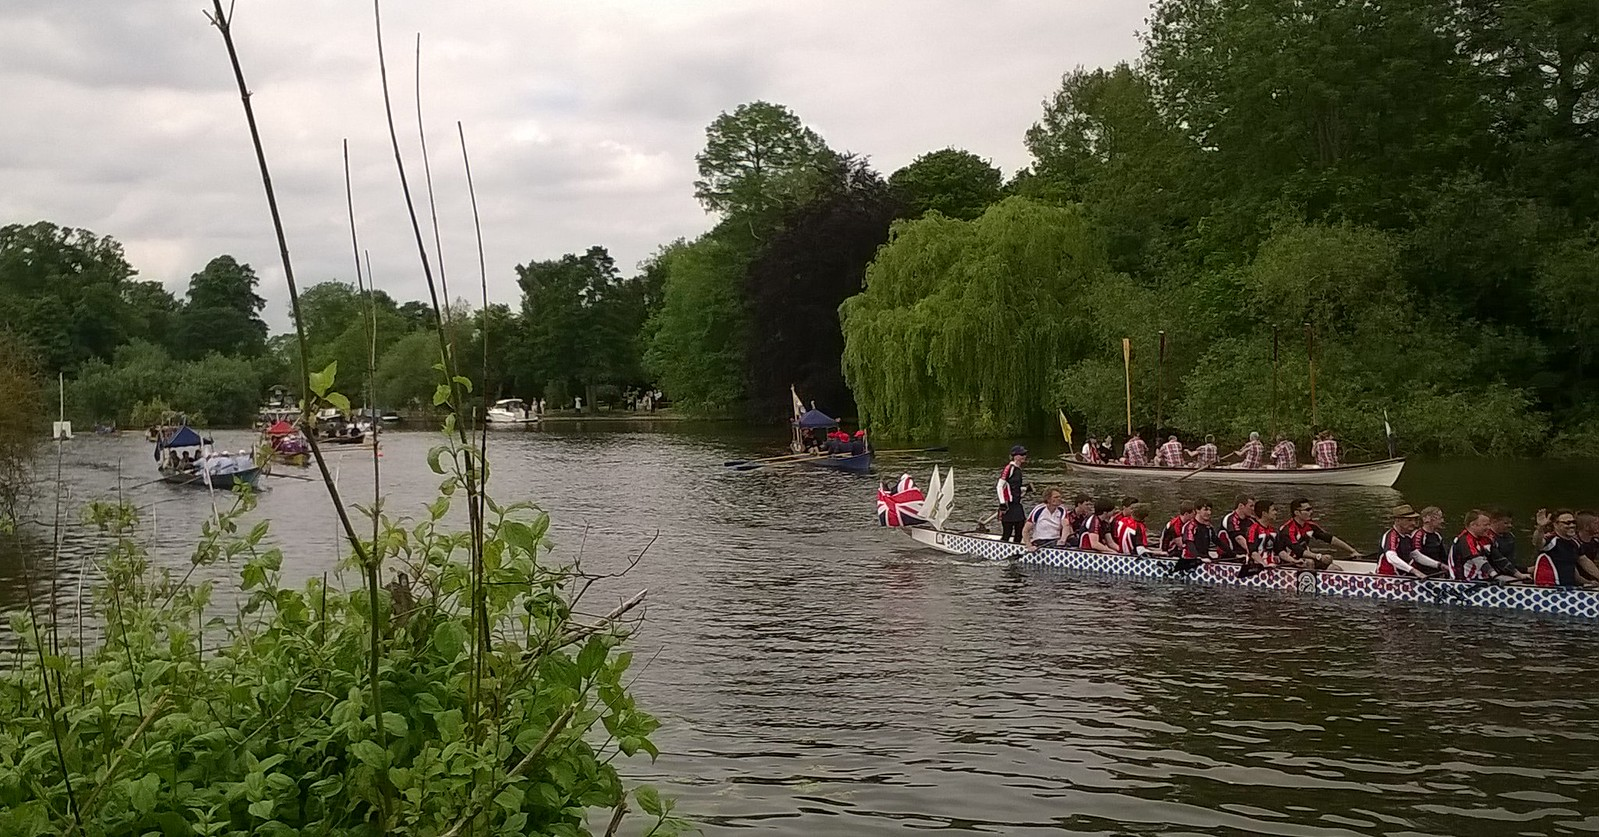 Runnymede regatta 800th anniversary of Magna Carta